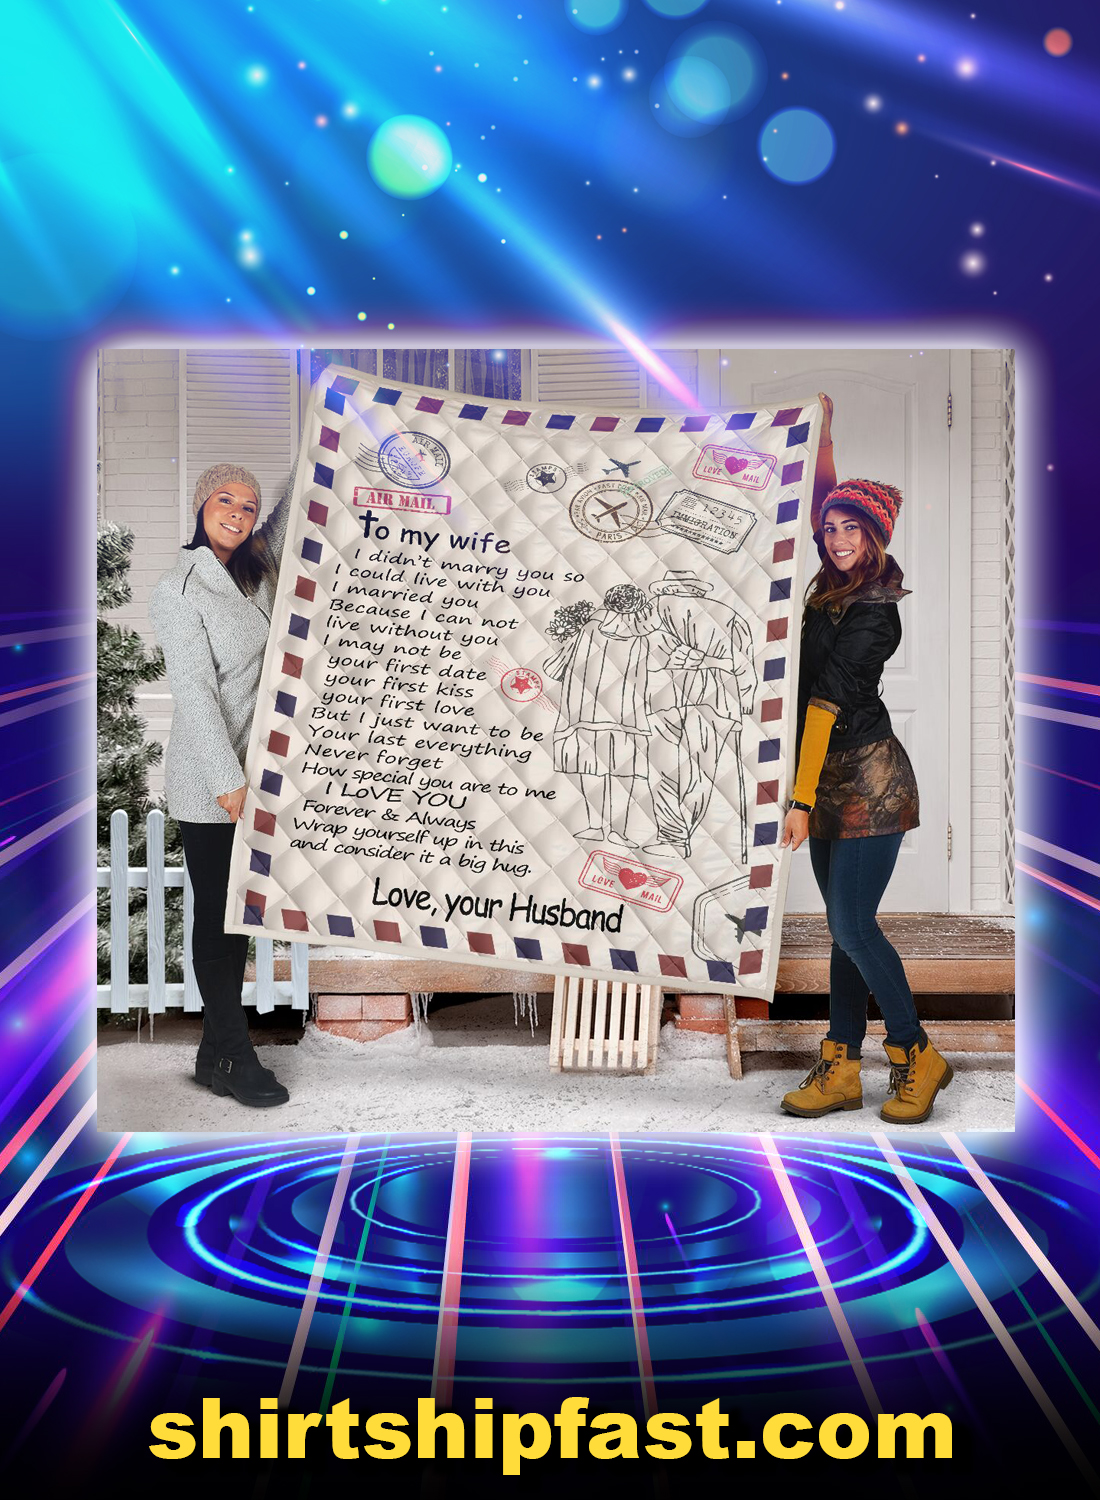 Letter air mail to my wife i didn't marry you quilt blanket - Picture 1